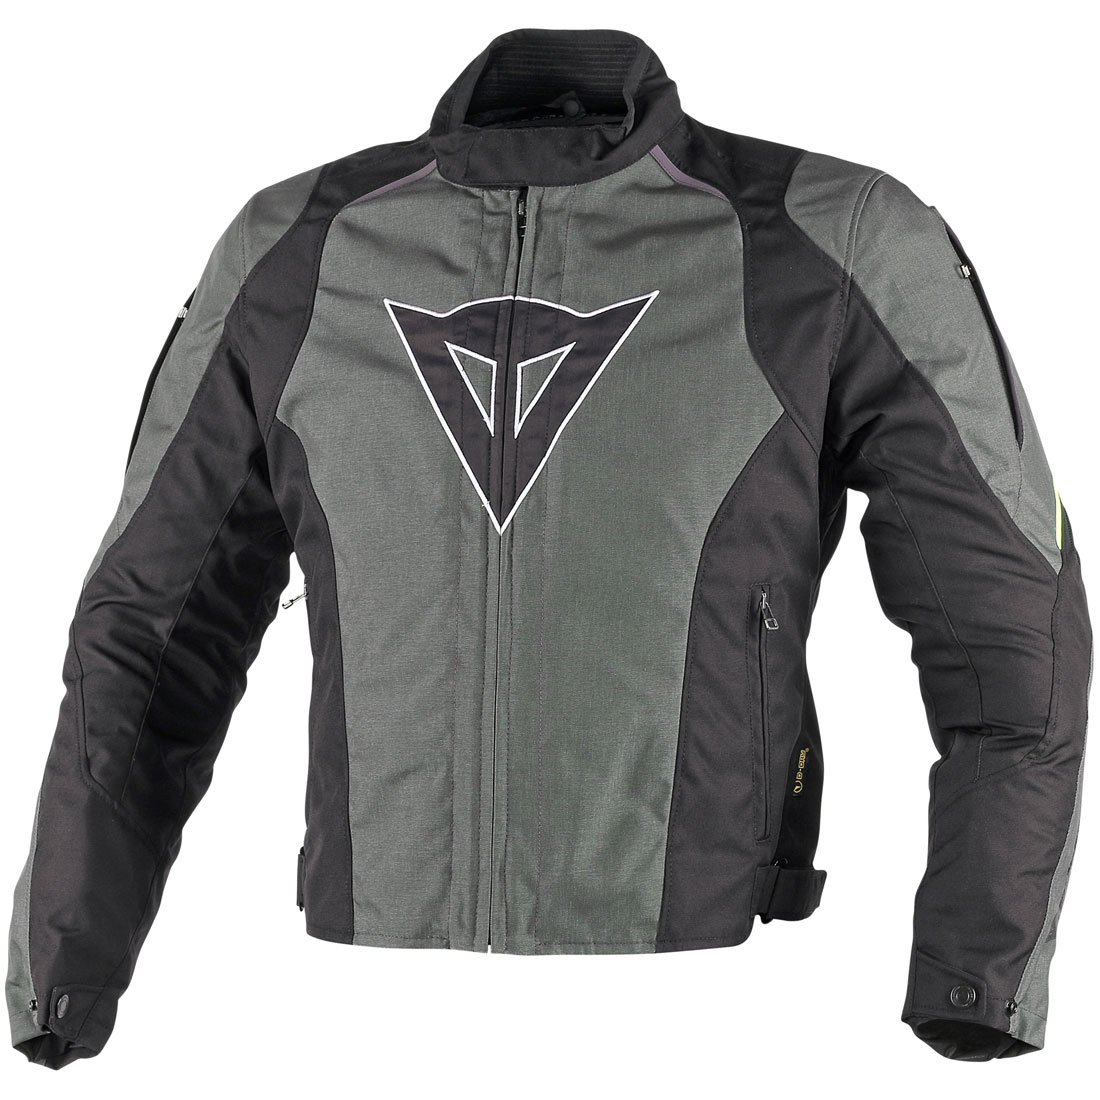 Dainese Laguna Seca D-dry Jacket Grey Fluo Yellow